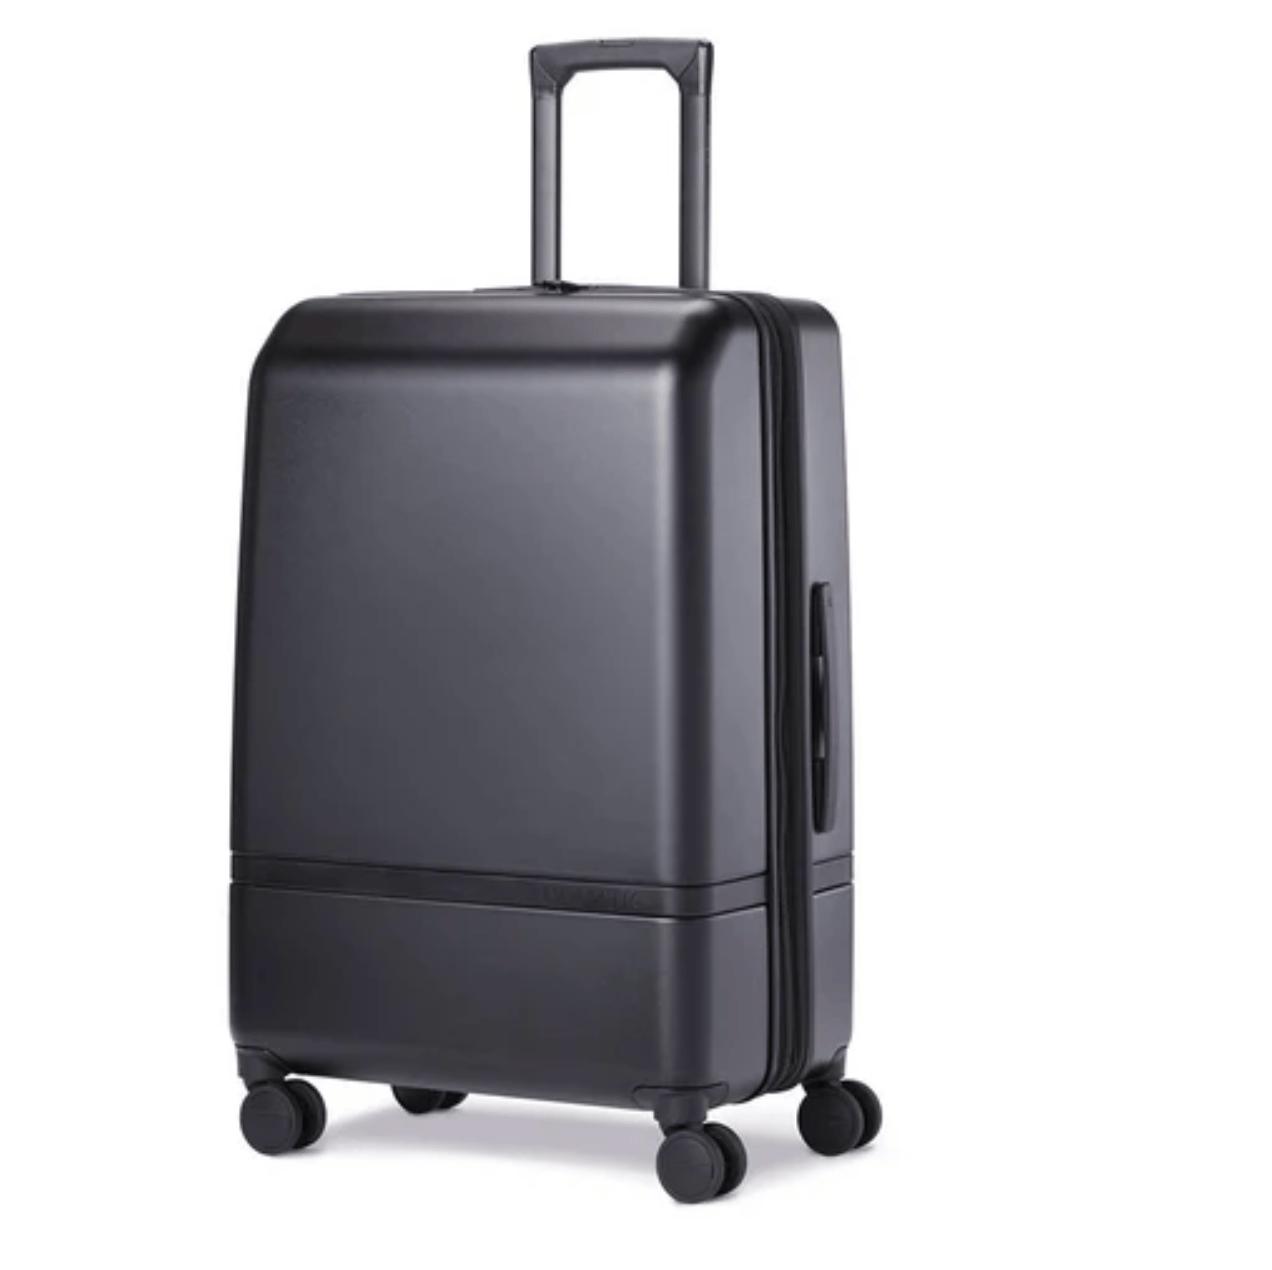 Nomatic wheeled luggage